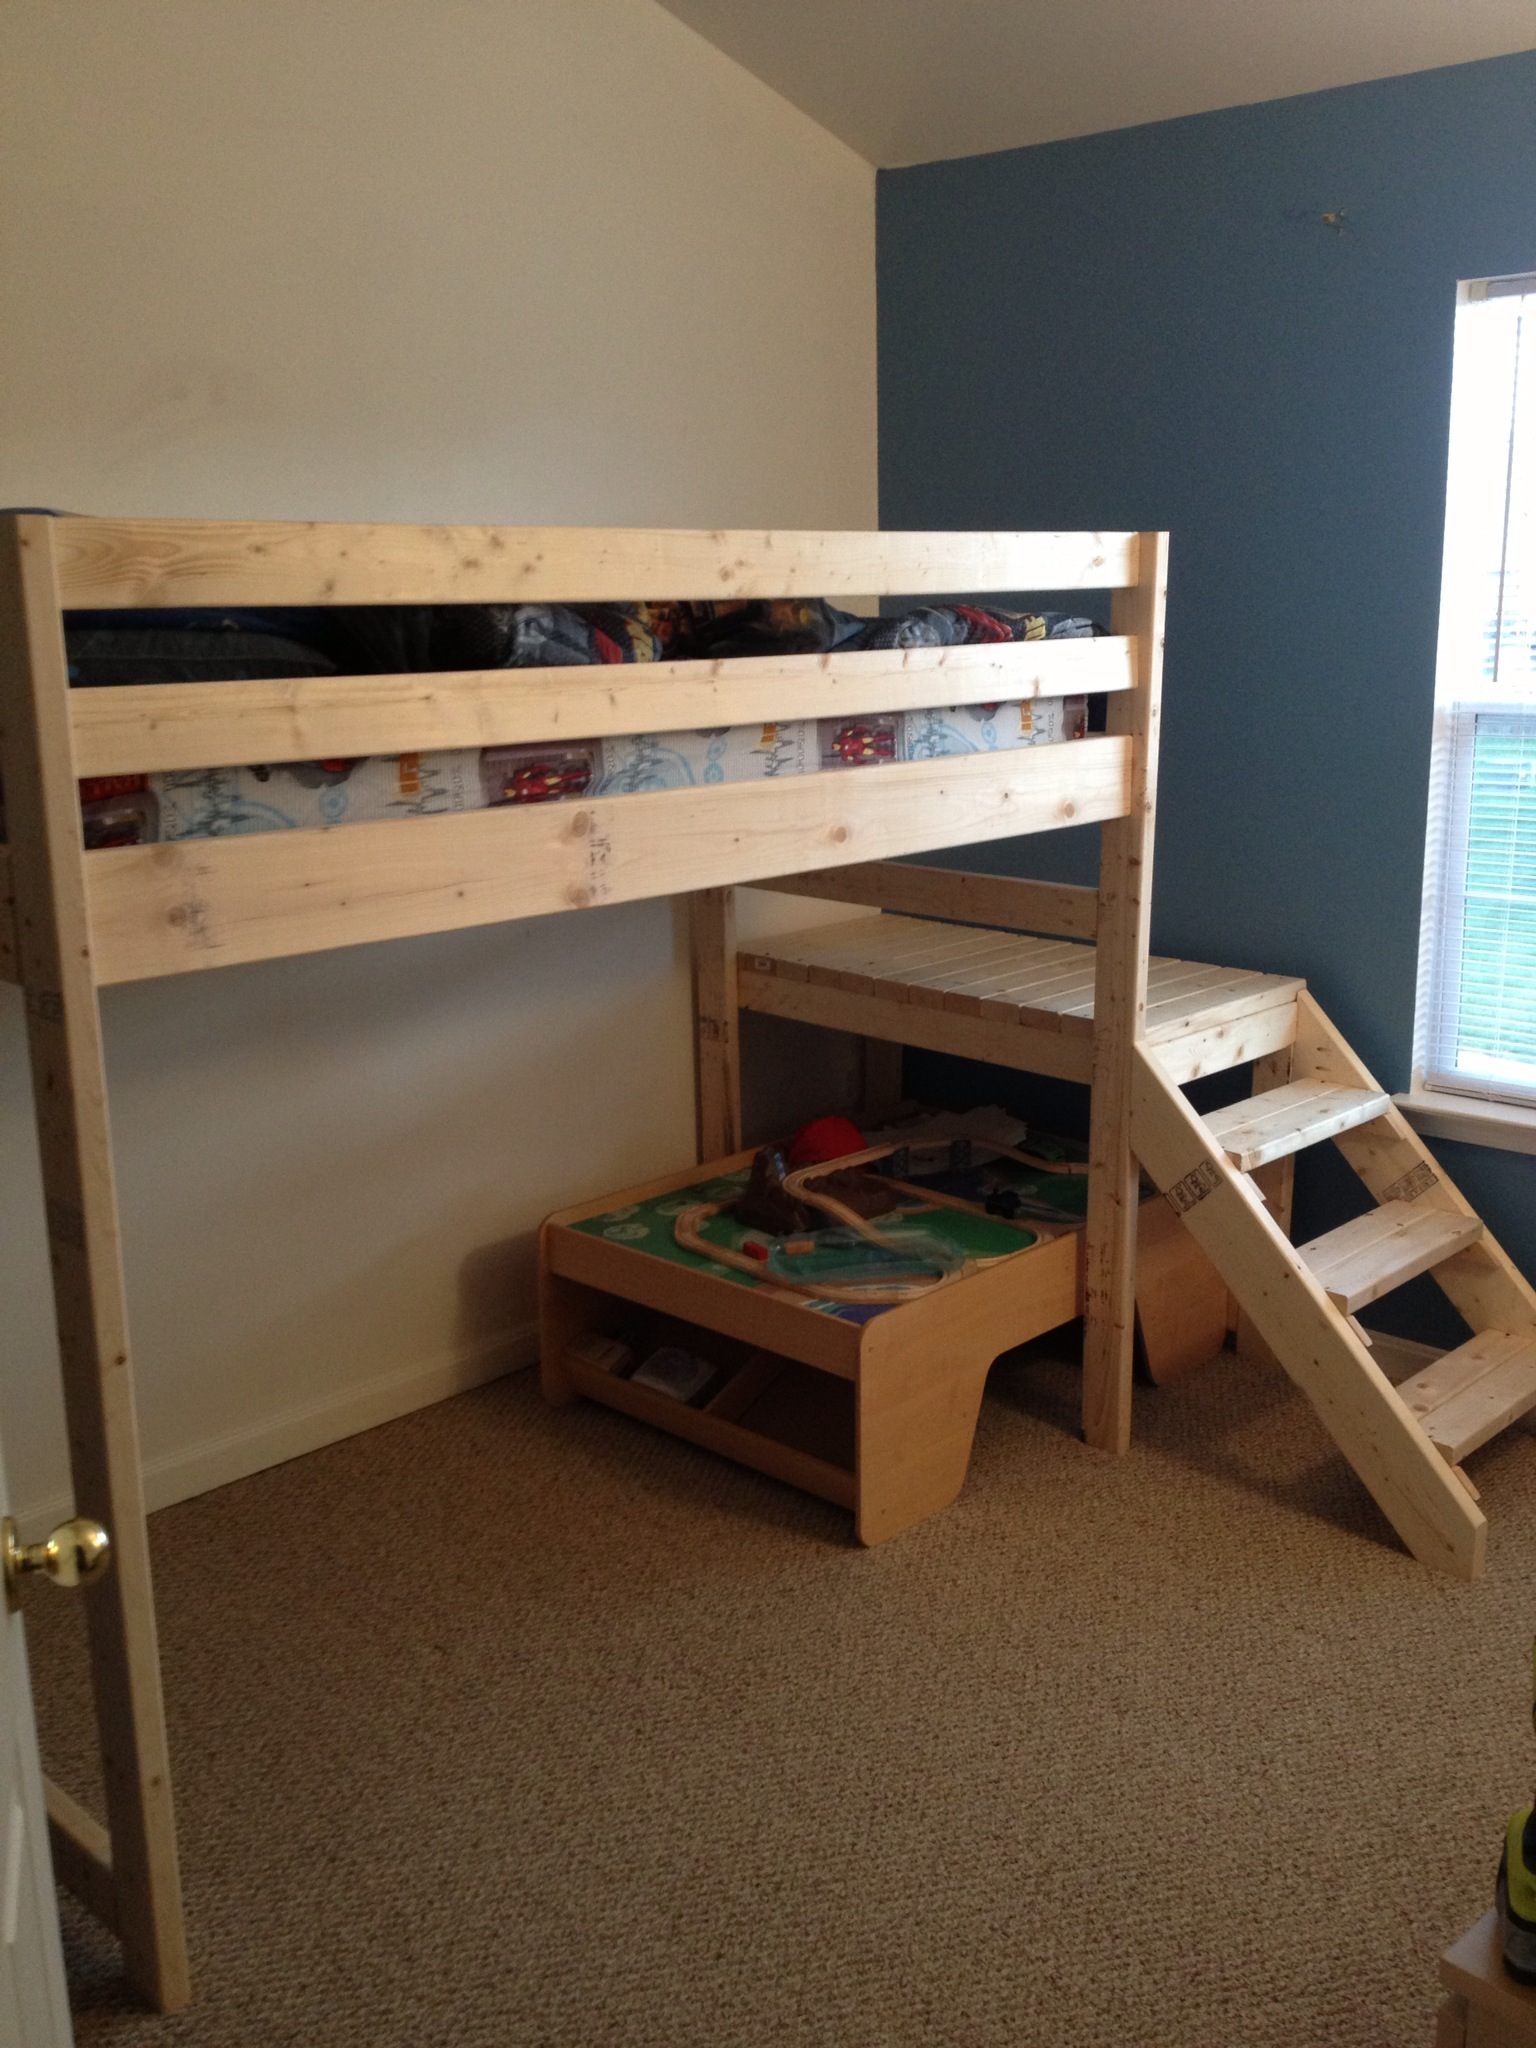 Build Cabin Plans With Loft Diy Pdf Wood Podium Plans Do: Loft Bed With Stair - DIY Projects